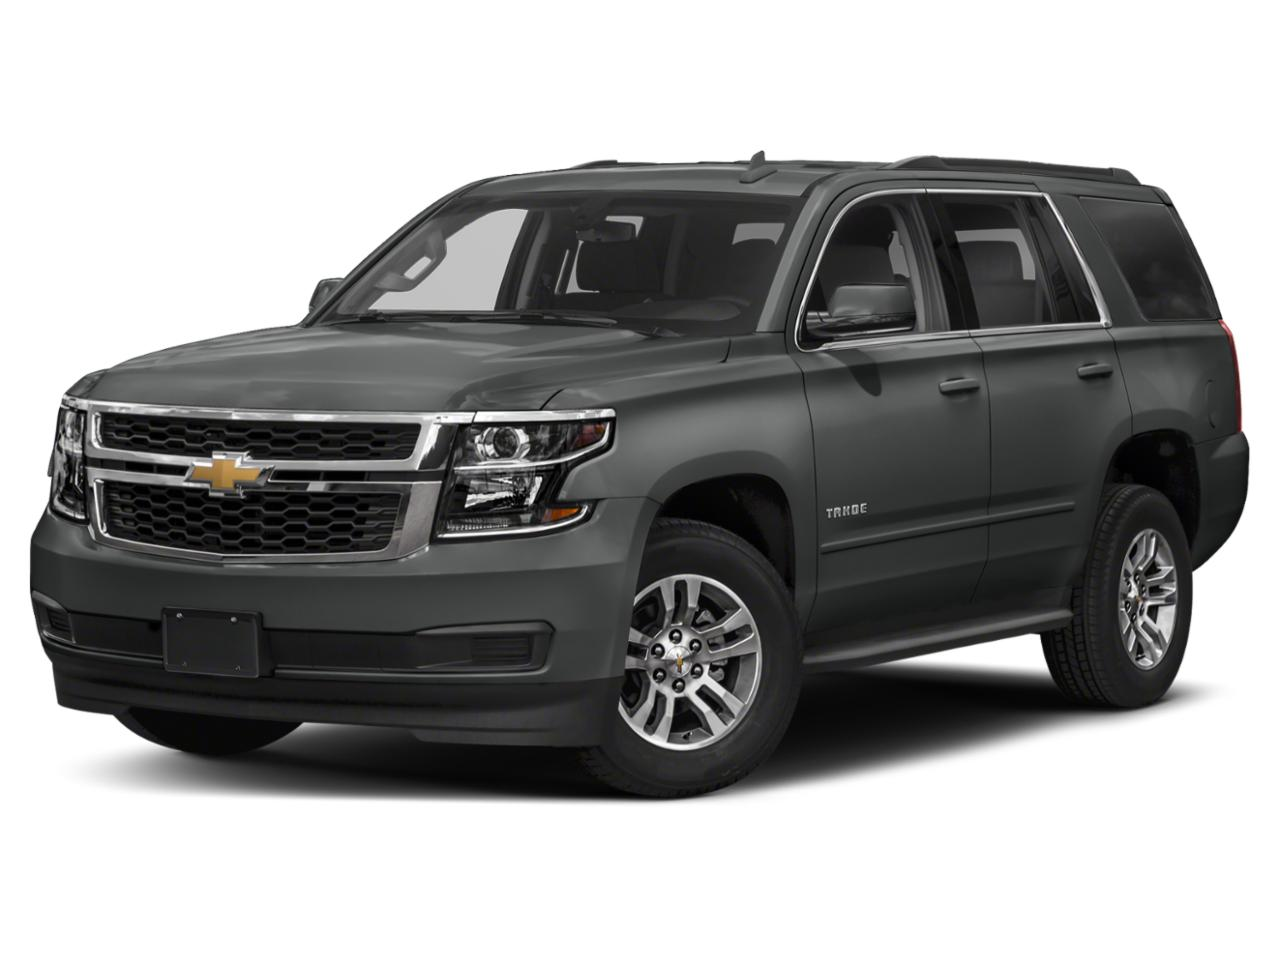 Shadow Gray Metallic 2019 Chevrolet Tahoe LS SUV Wake Forest NC